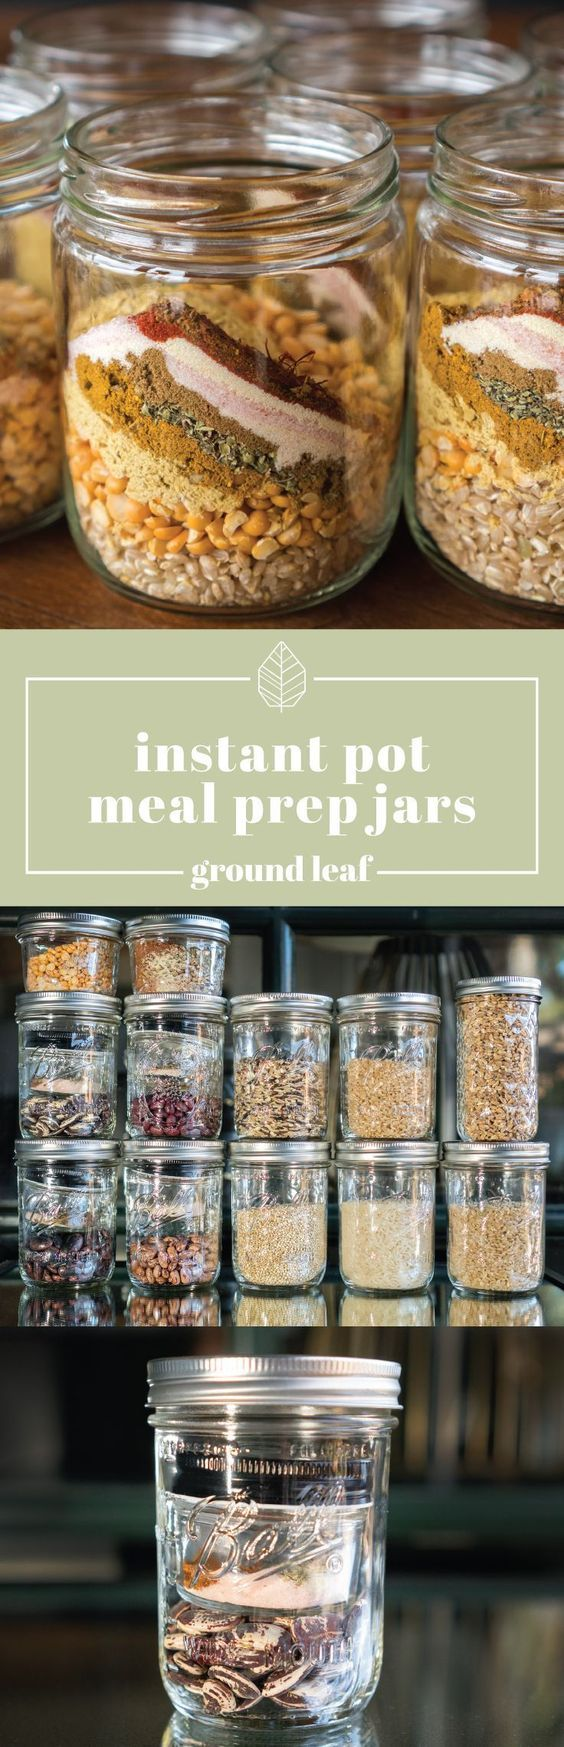 Instant Pot Meal Prep Jars – I can't wait to try this!!  My PC is already a …